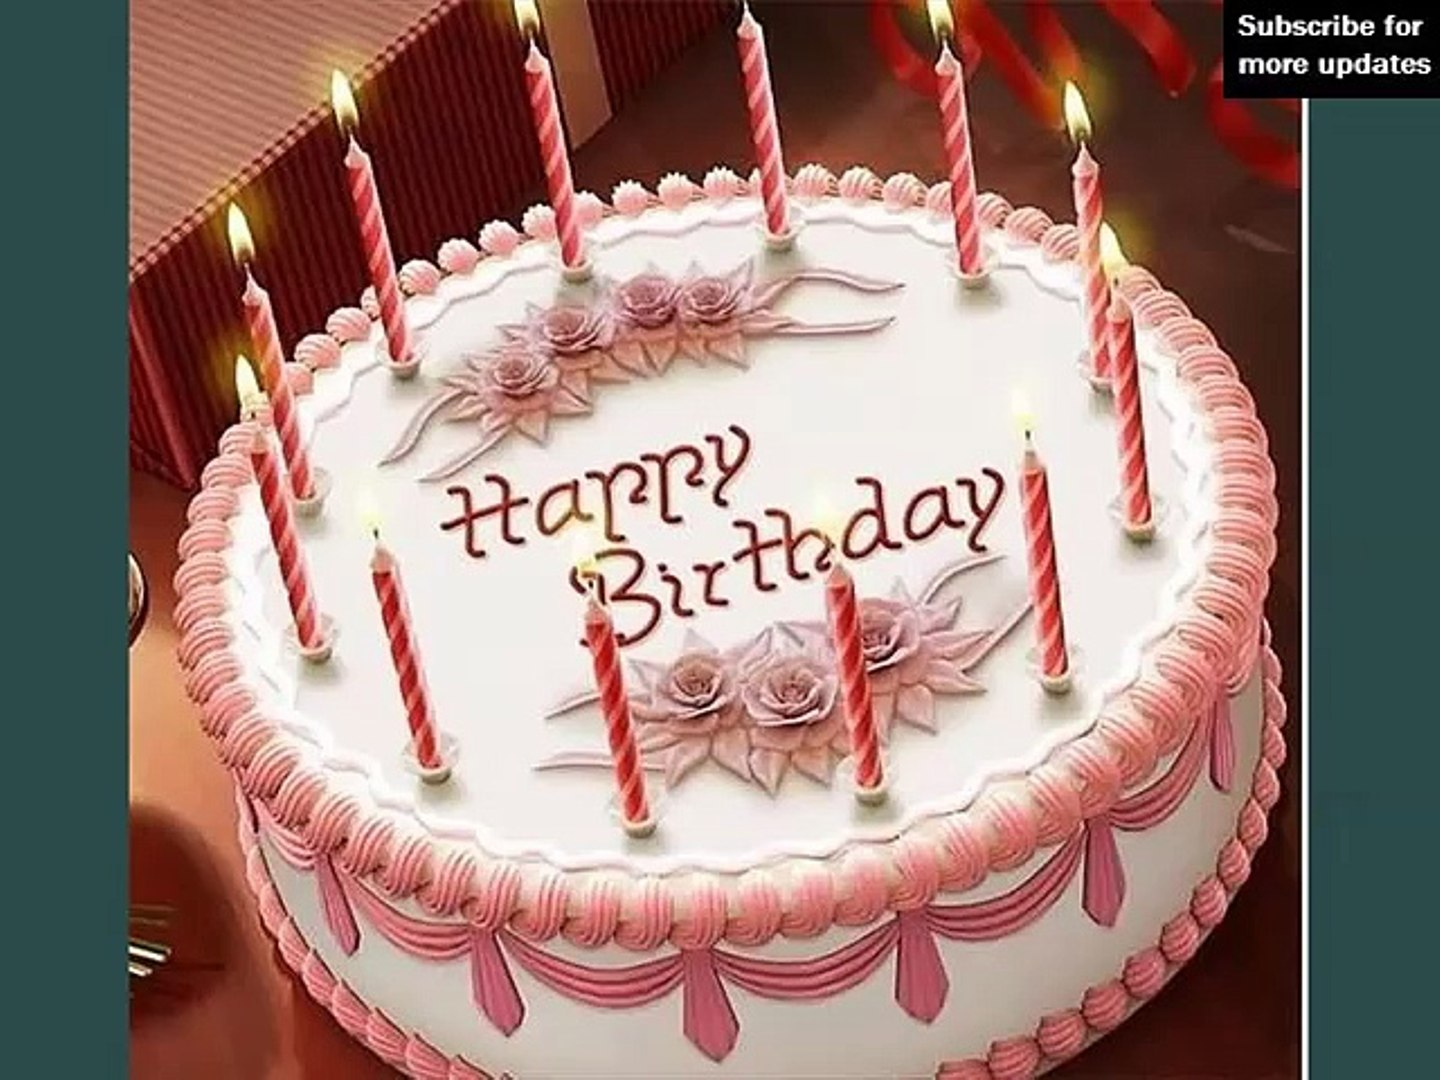 Birthday Cake Images With Name Create Cakes Names Online Tasty Mouth Watering